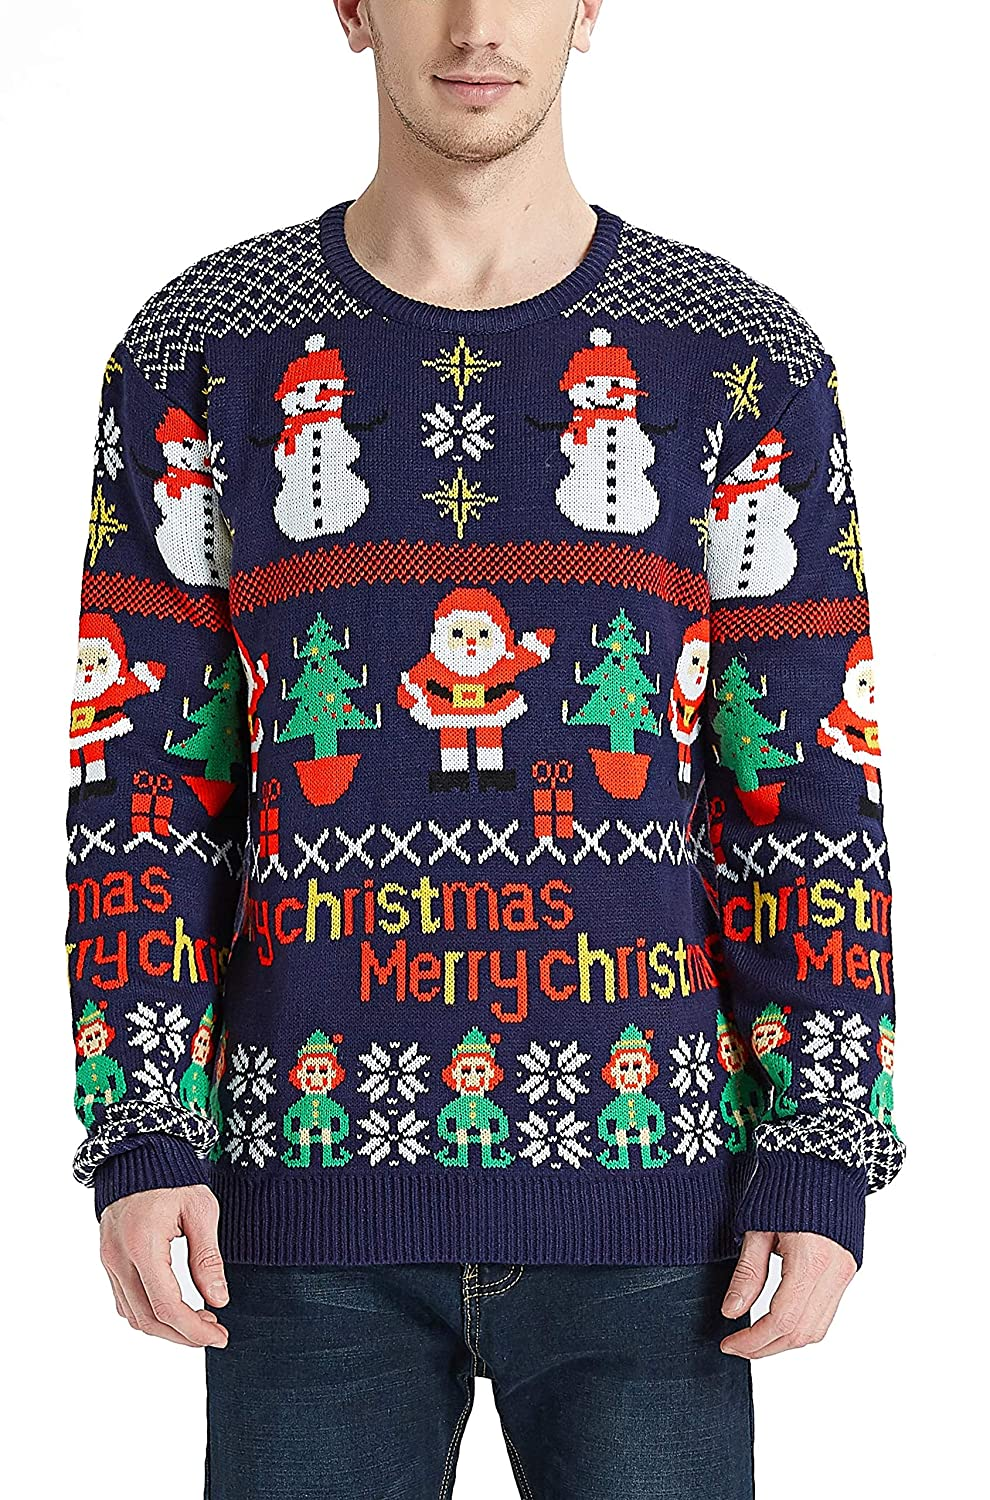 Mens Christmas Rudolph Reindeer Santa Holiday Knitted Sweater Cardigan Ugly Pullover